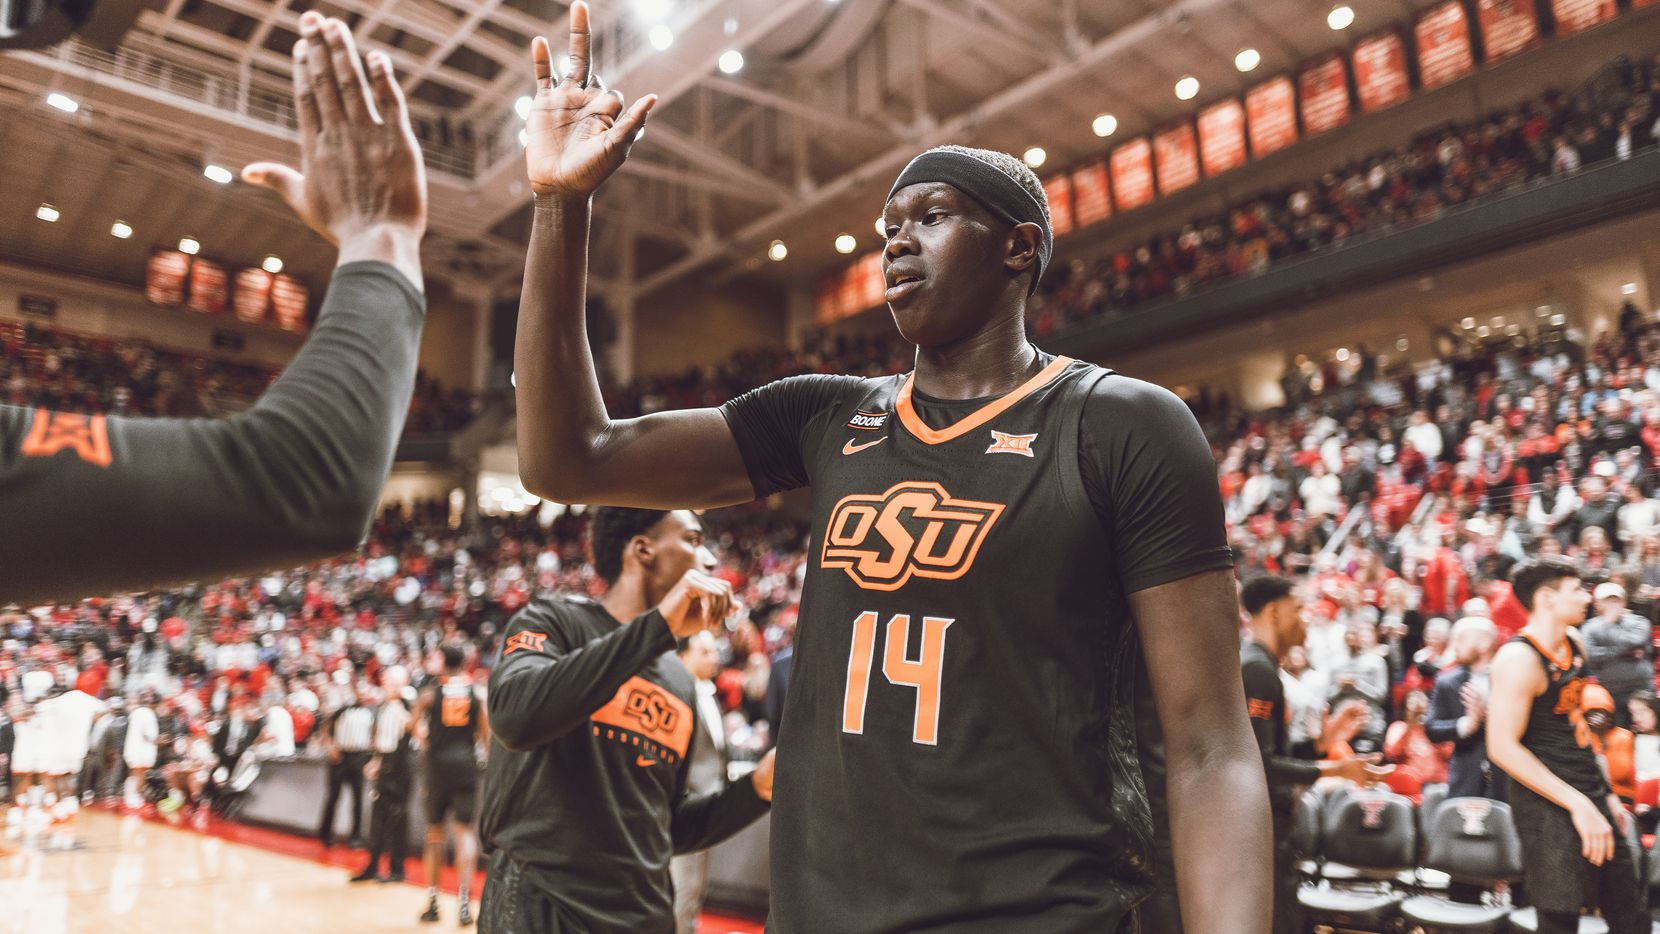 Yor Anei is pictured above at a game between Oklahoma State and Texas Tech on Saturday, Jan. 4, 2020, at United Supermarkets Arena in Lubbock. (Courtney Bay/OSU Athletics)